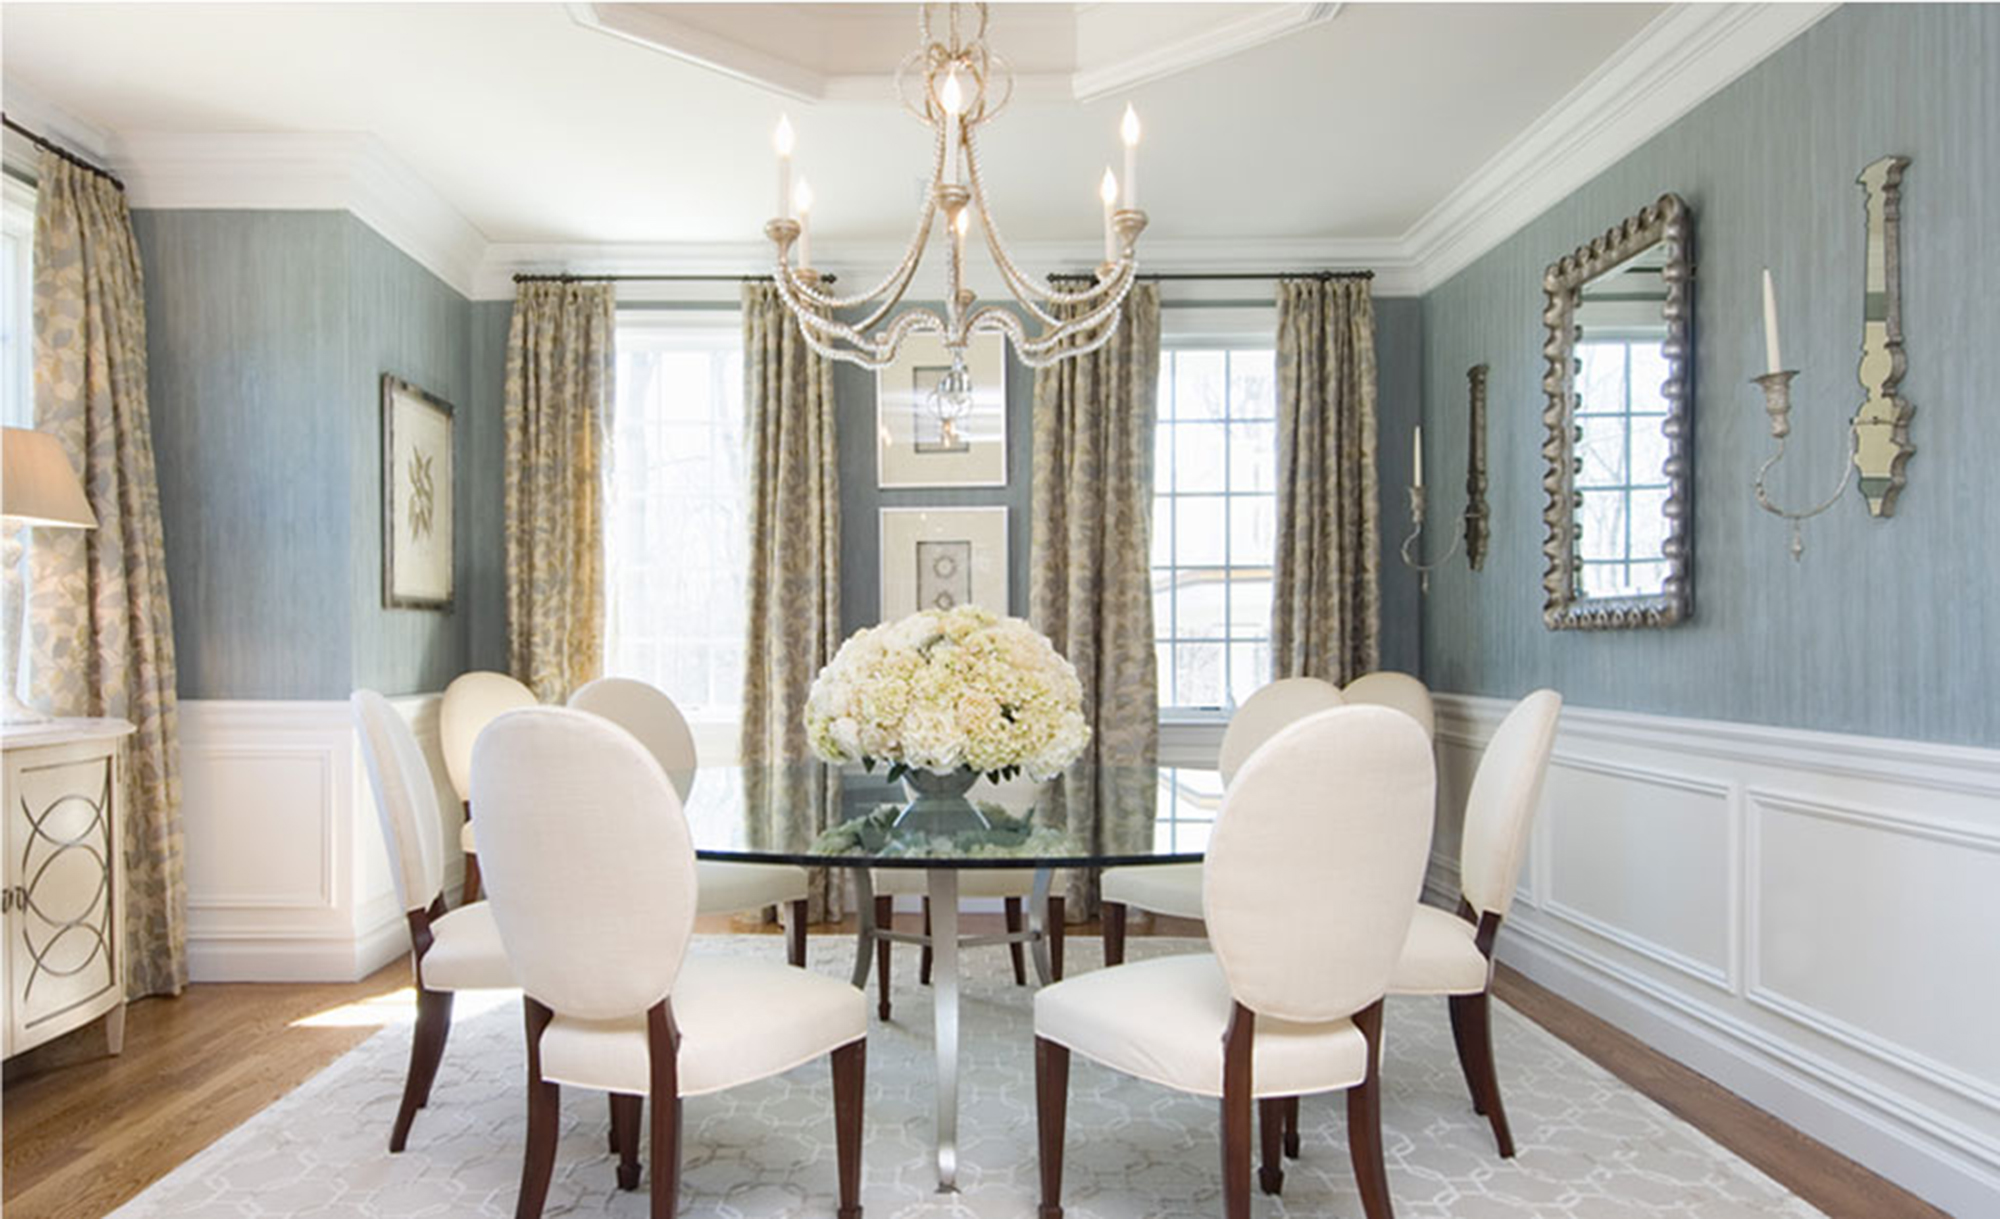 Cool How Many People Can Fit At My Dining Room Table Kathy Kuo Download Free Architecture Designs Xaembritishbridgeorg